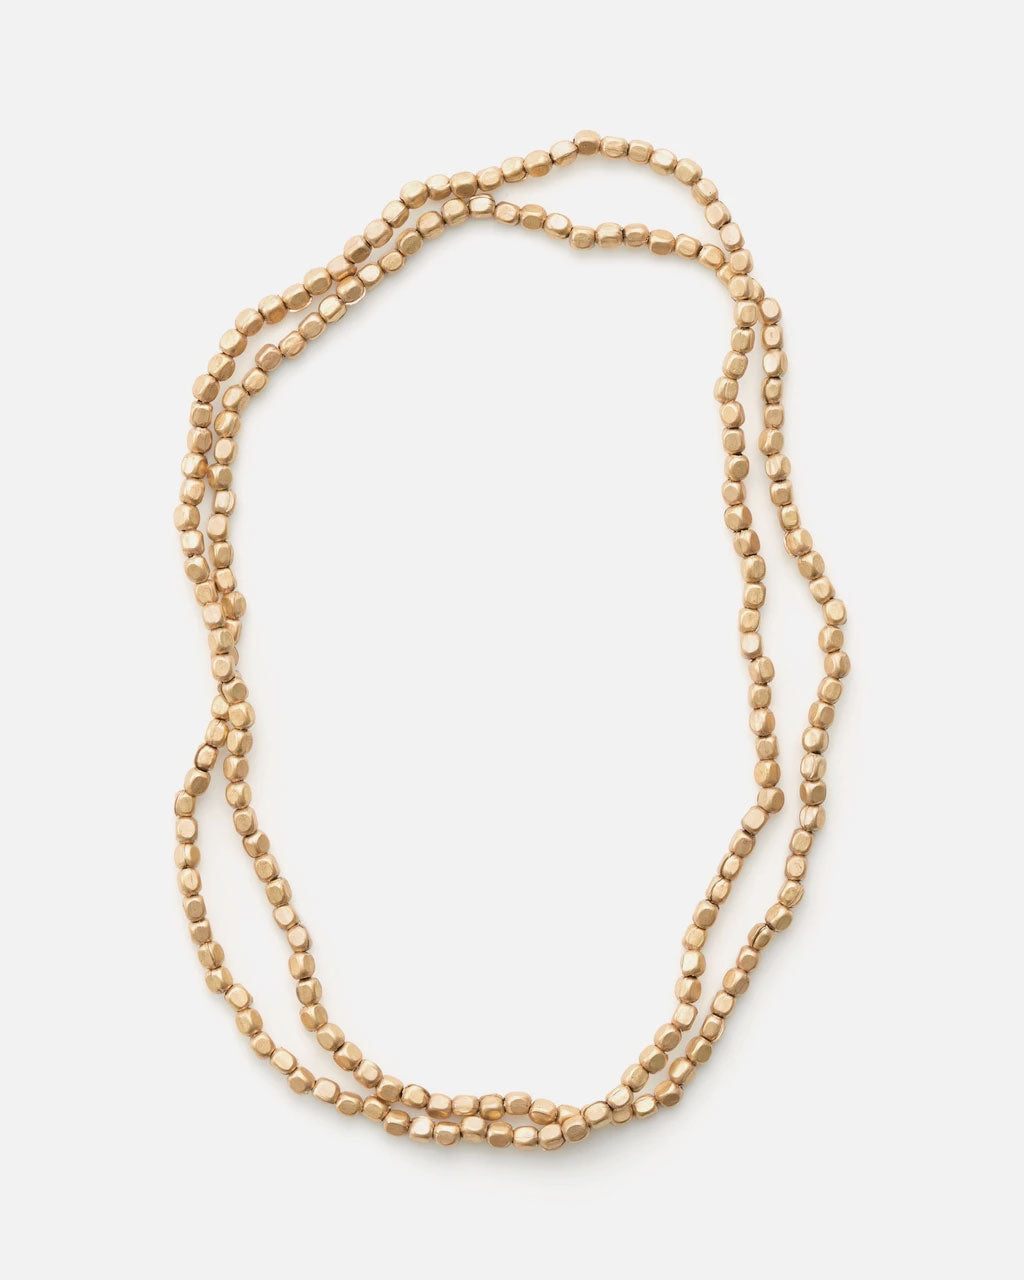 Fog Linen Work Brass Bead Necklace